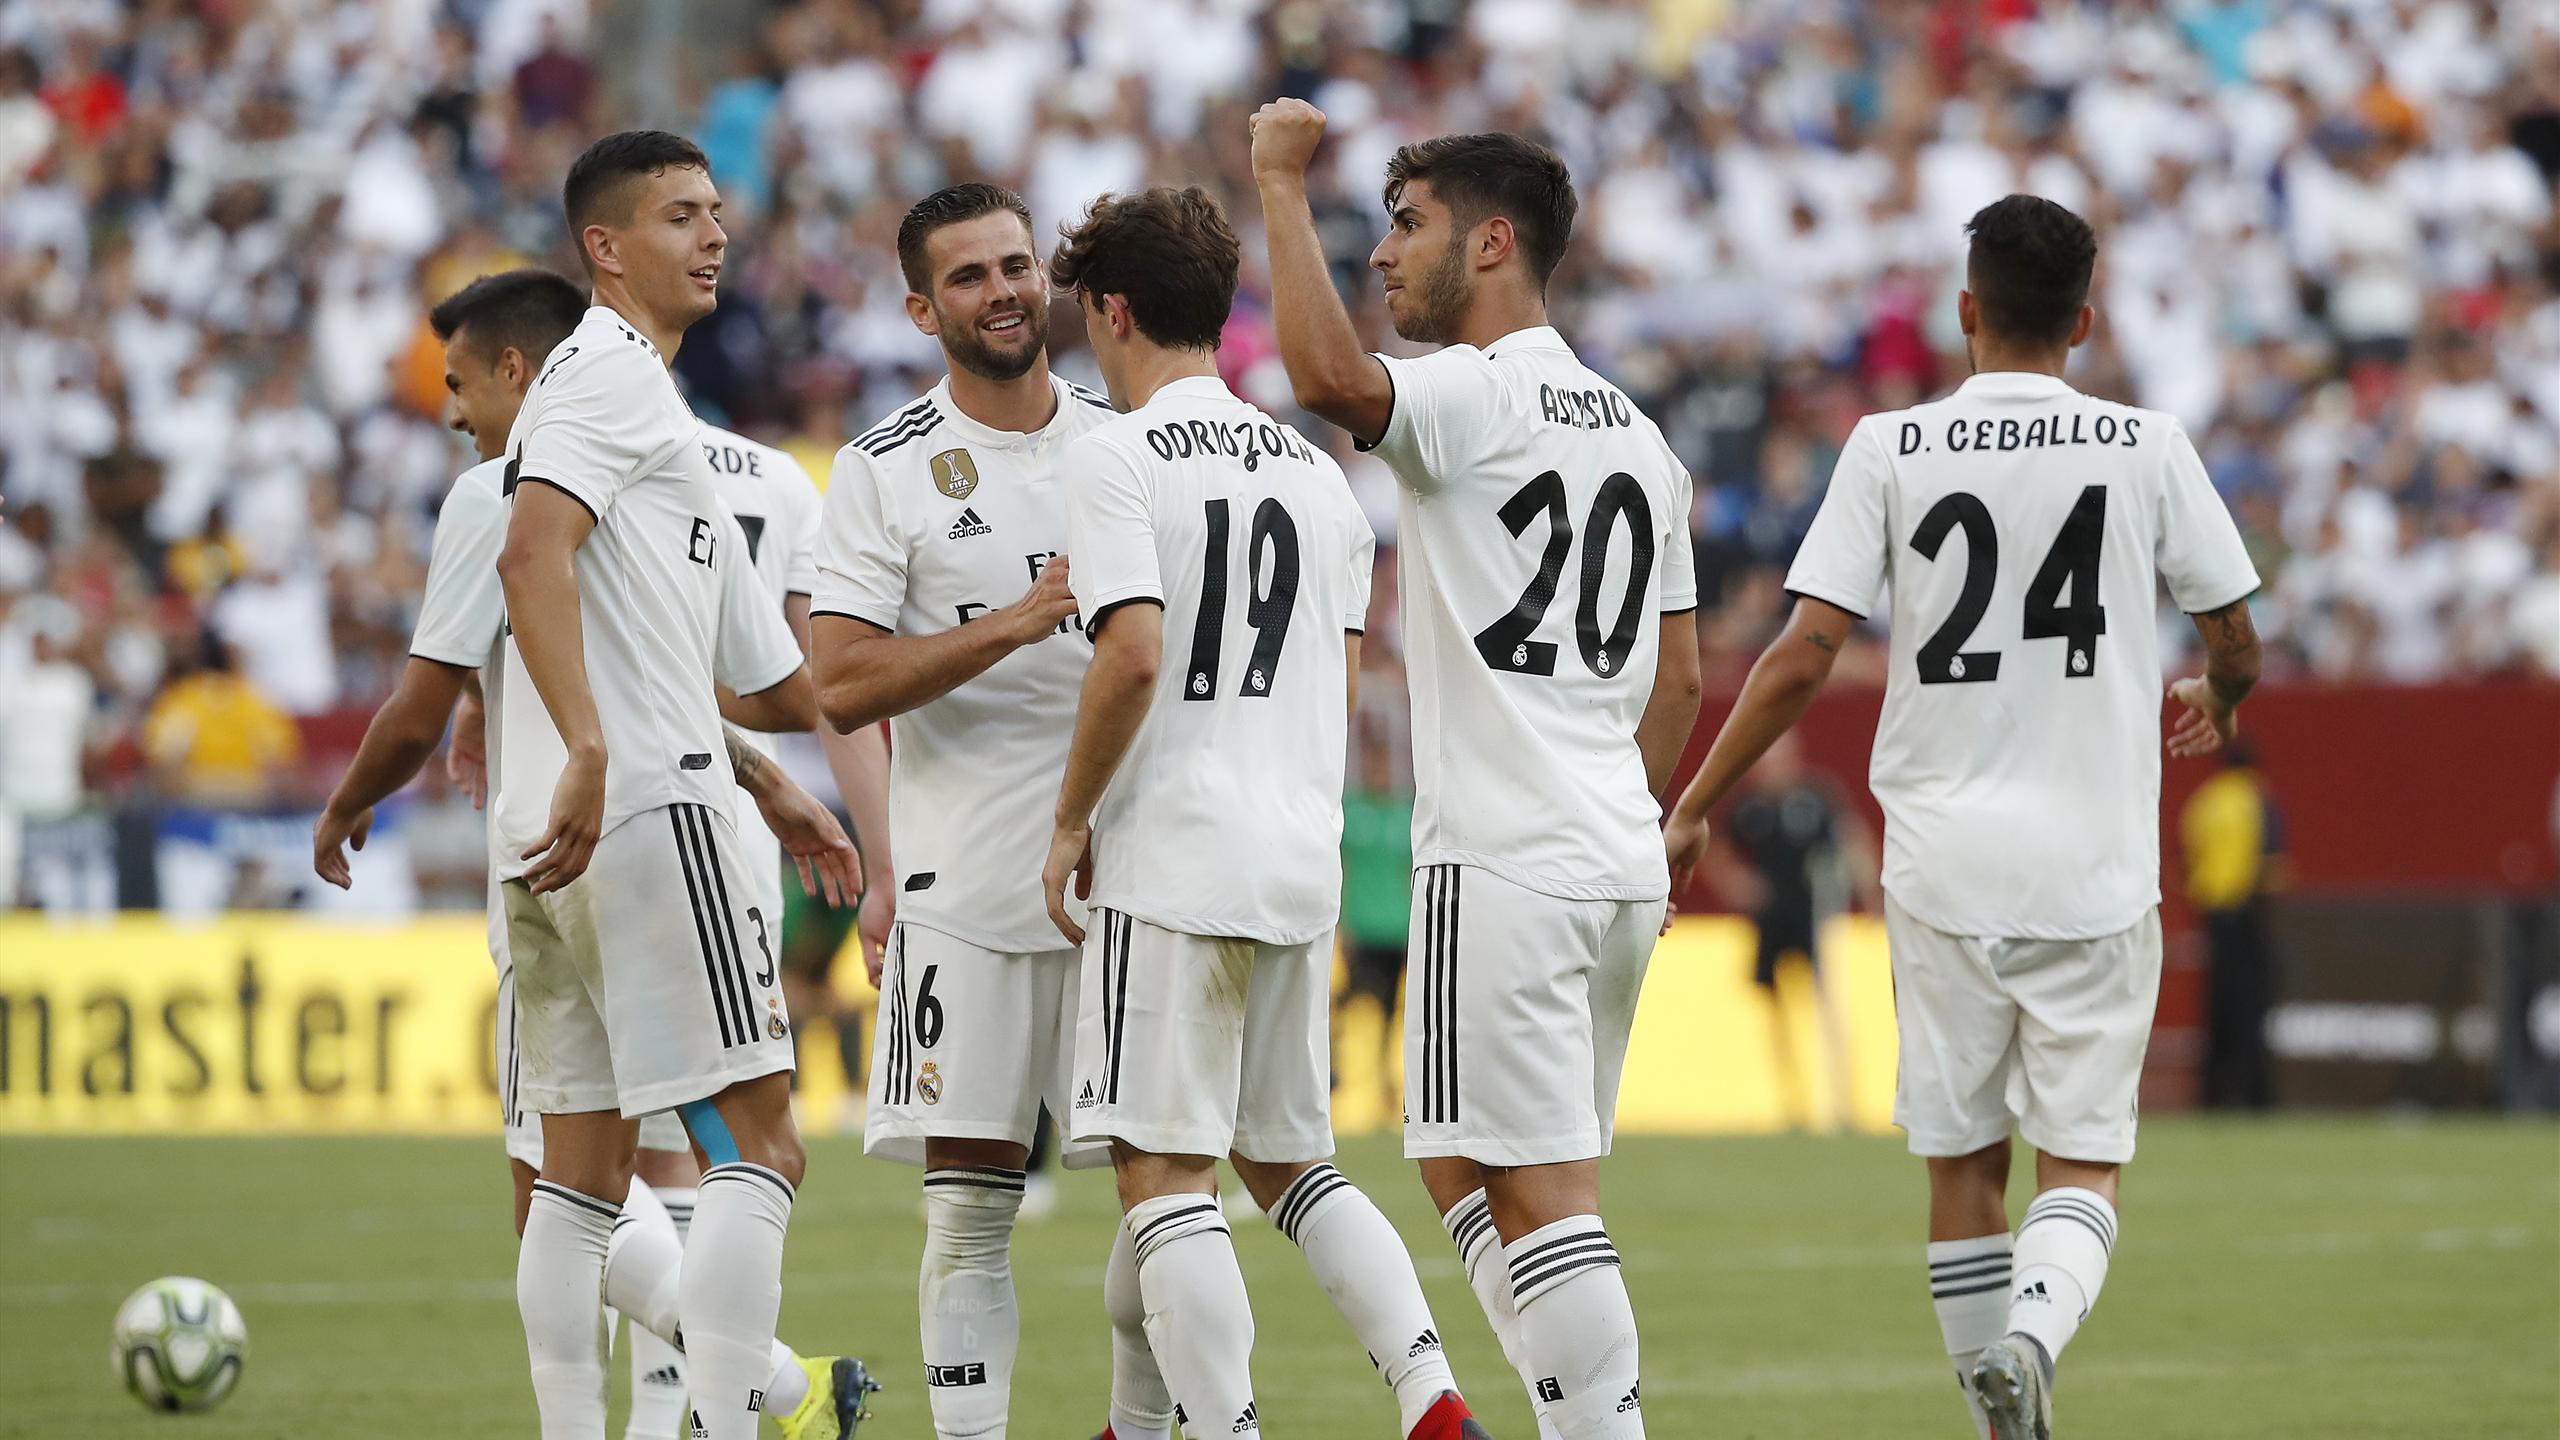 Asensio at the double as Real Madrid crush Juventus   International     Asensio at the double as Real Madrid crush Juventus   International  Champions Cup 2018   Football   Eurosport